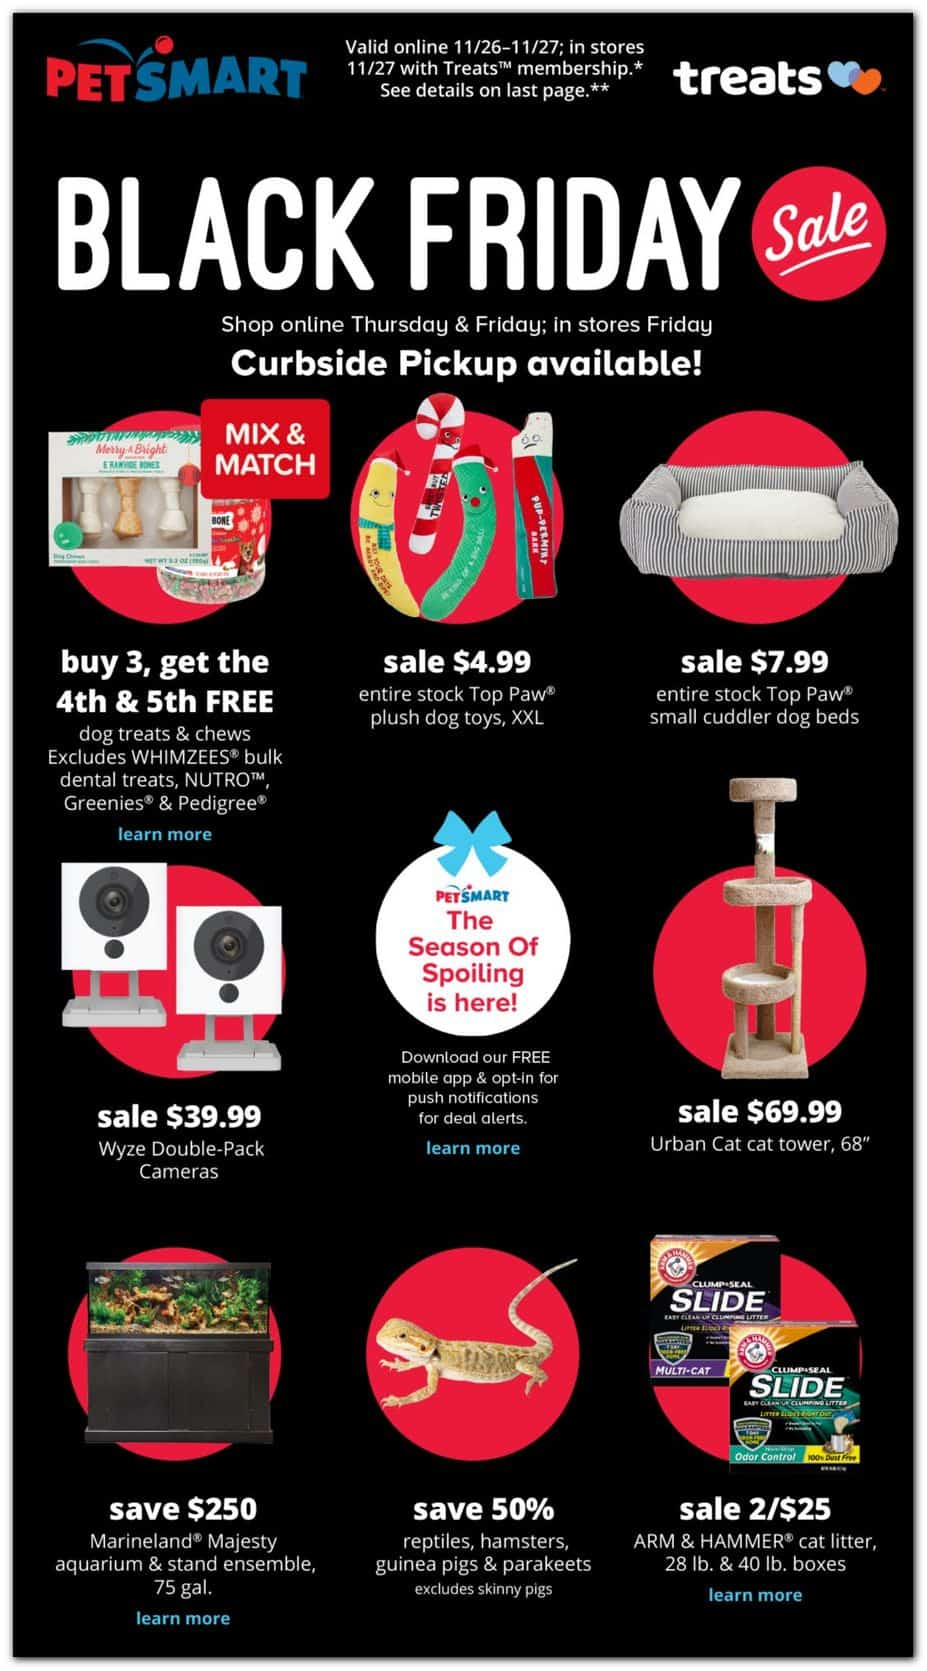 Pet Smart Black Friday ad sale with curbside pickup available.